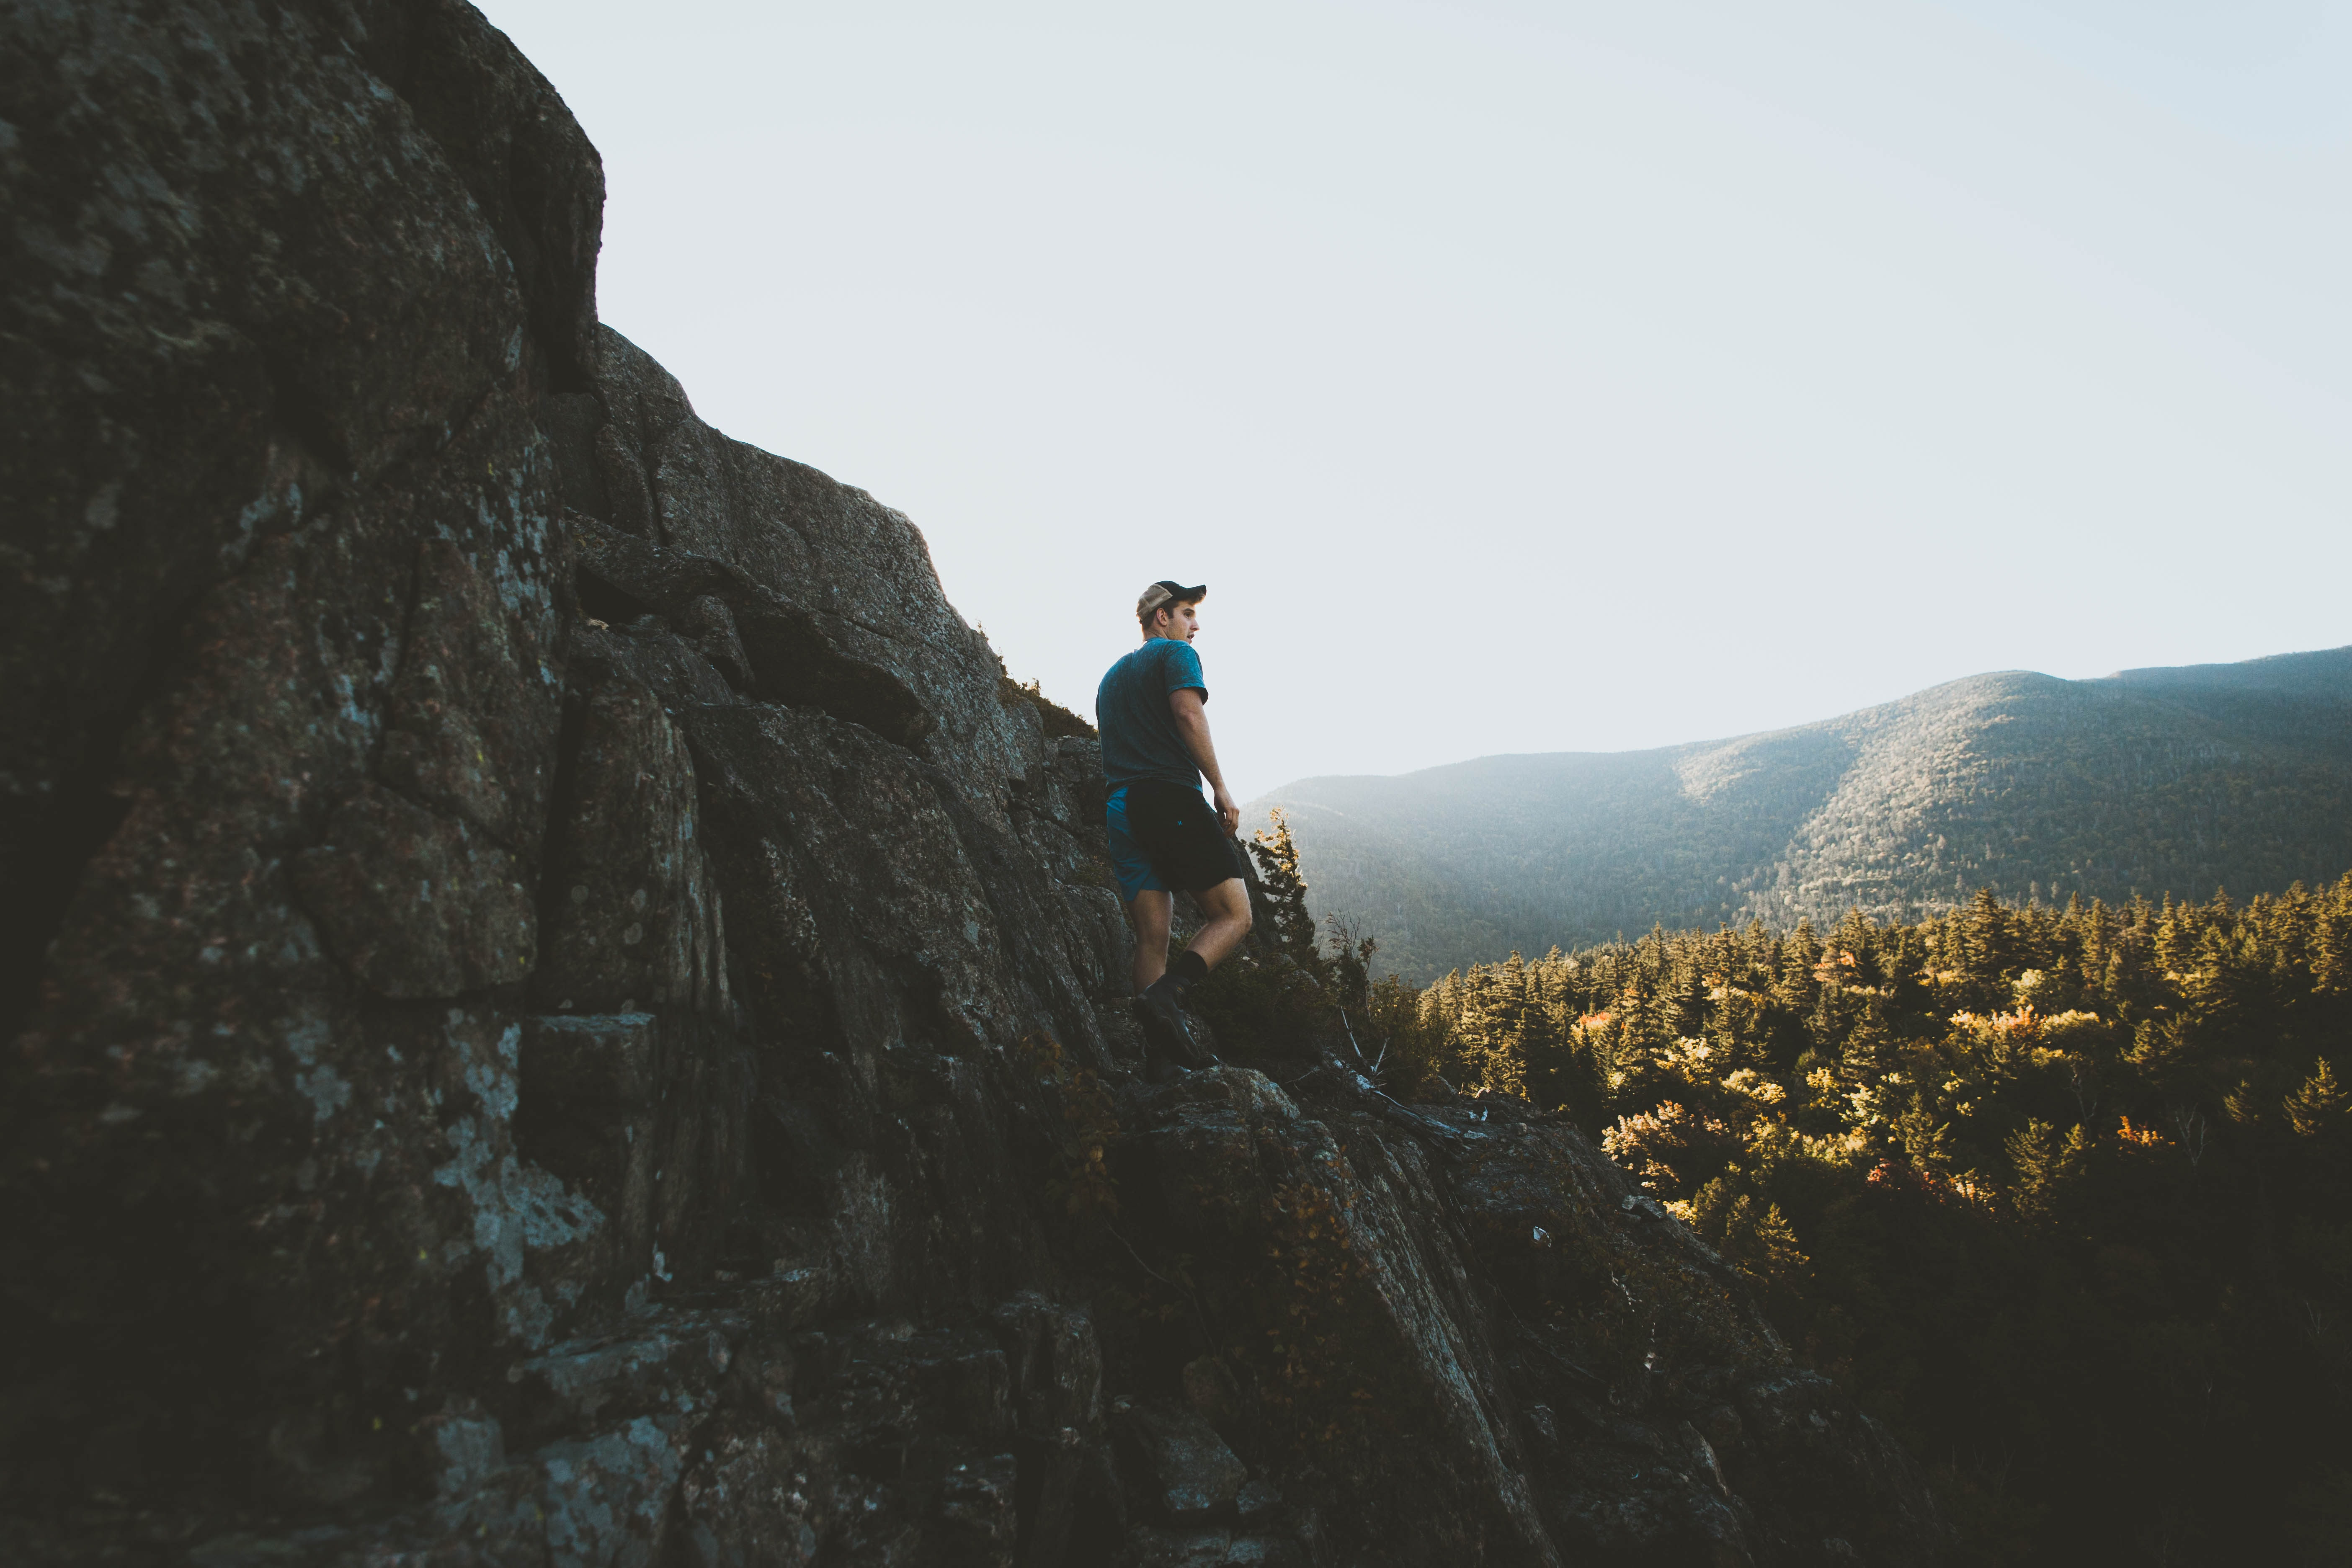 A young man in a cap on a jagged rock formation in a morning